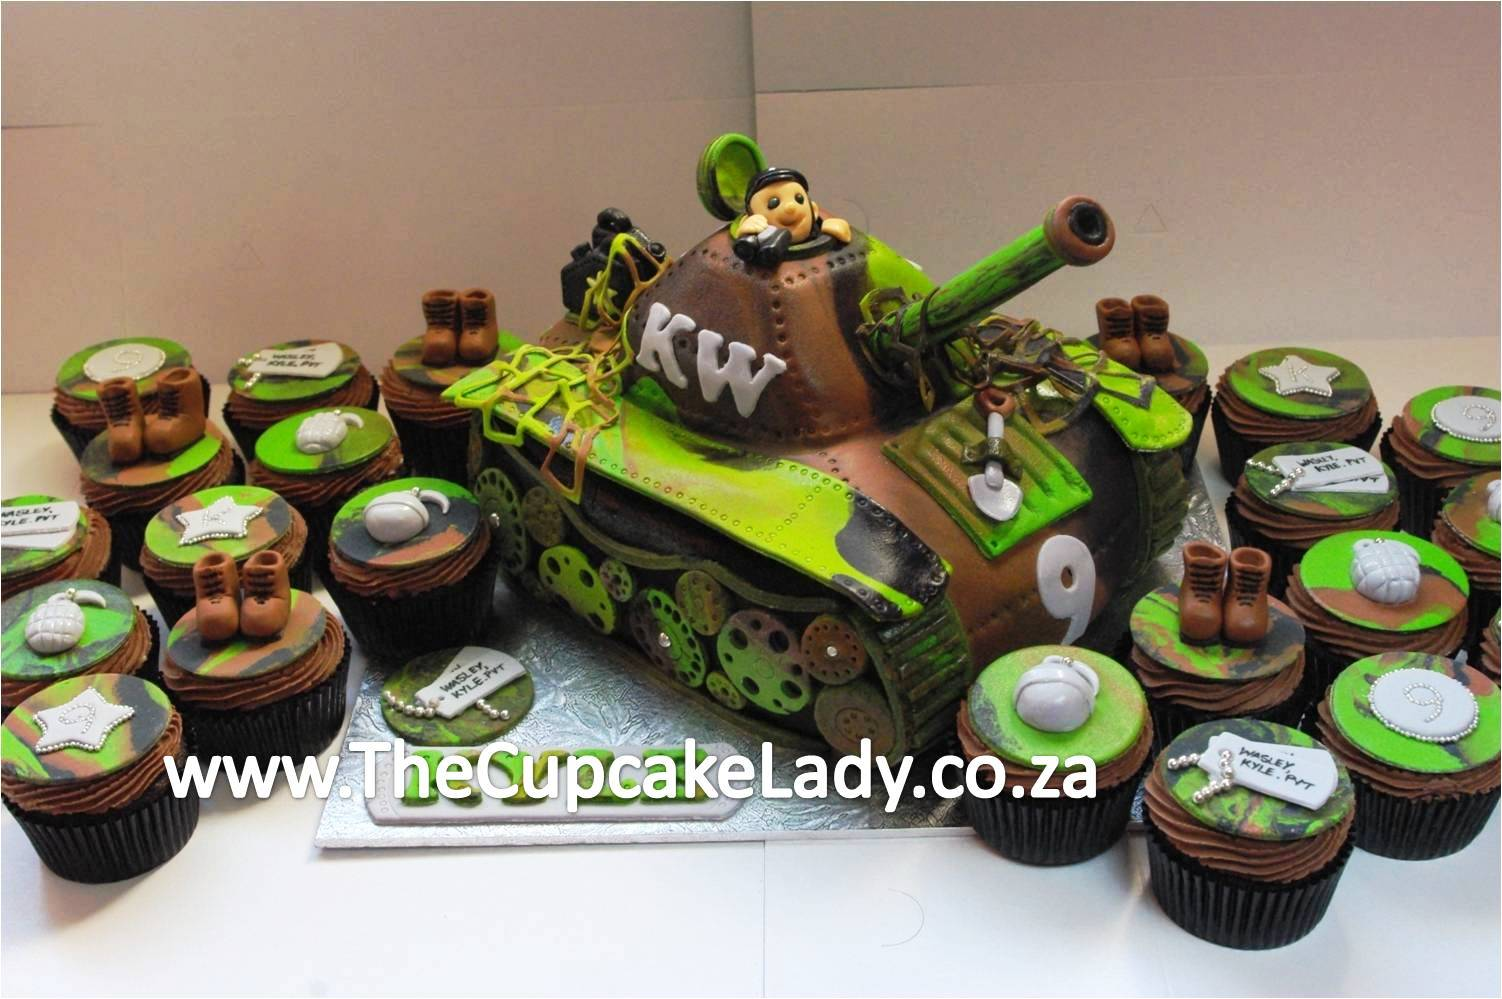 An Army Themed Cake And Cupcake Order